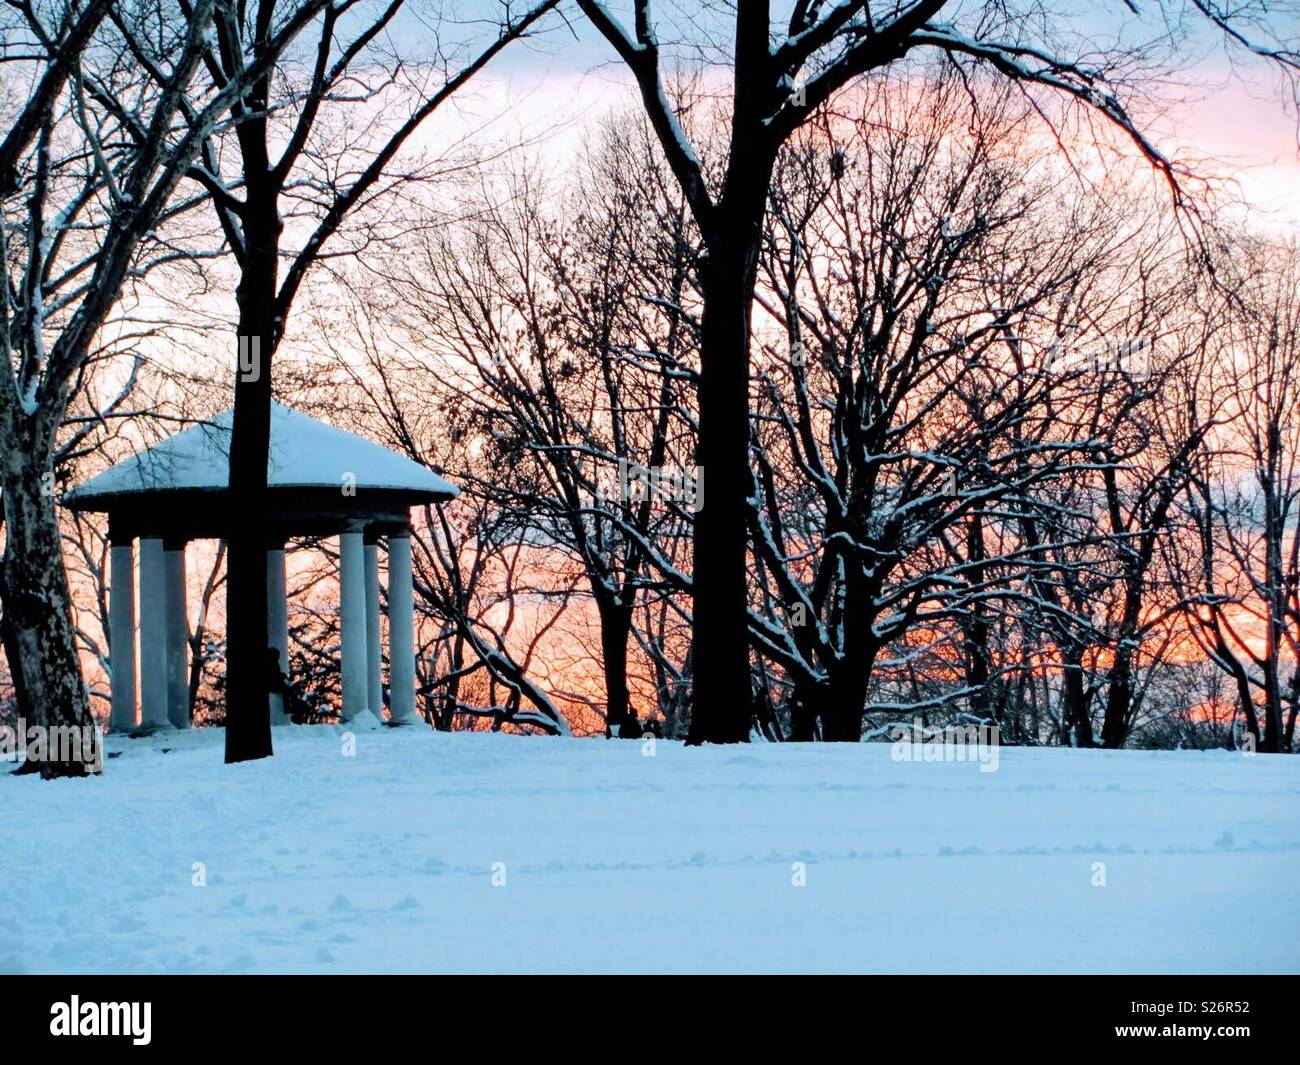 Snow in NewJersey Lincoln Park - Stock Image